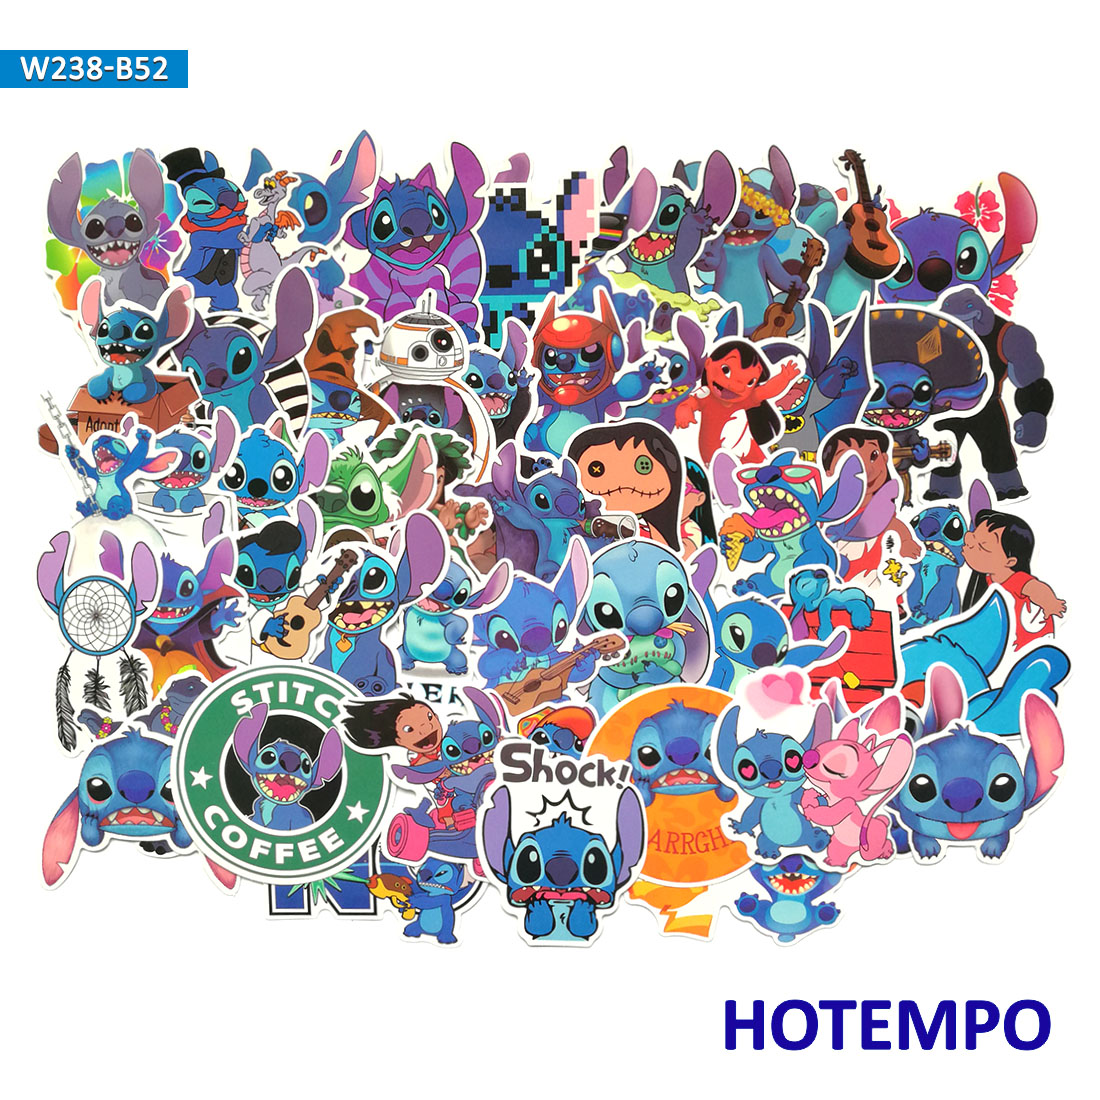 50pcs CuteLilo Stitch Anime Lovely Stickers For Kid Gift DIY Letter Diary Scrapbooking Stationery Pegatinas Phone Laptop Sticker